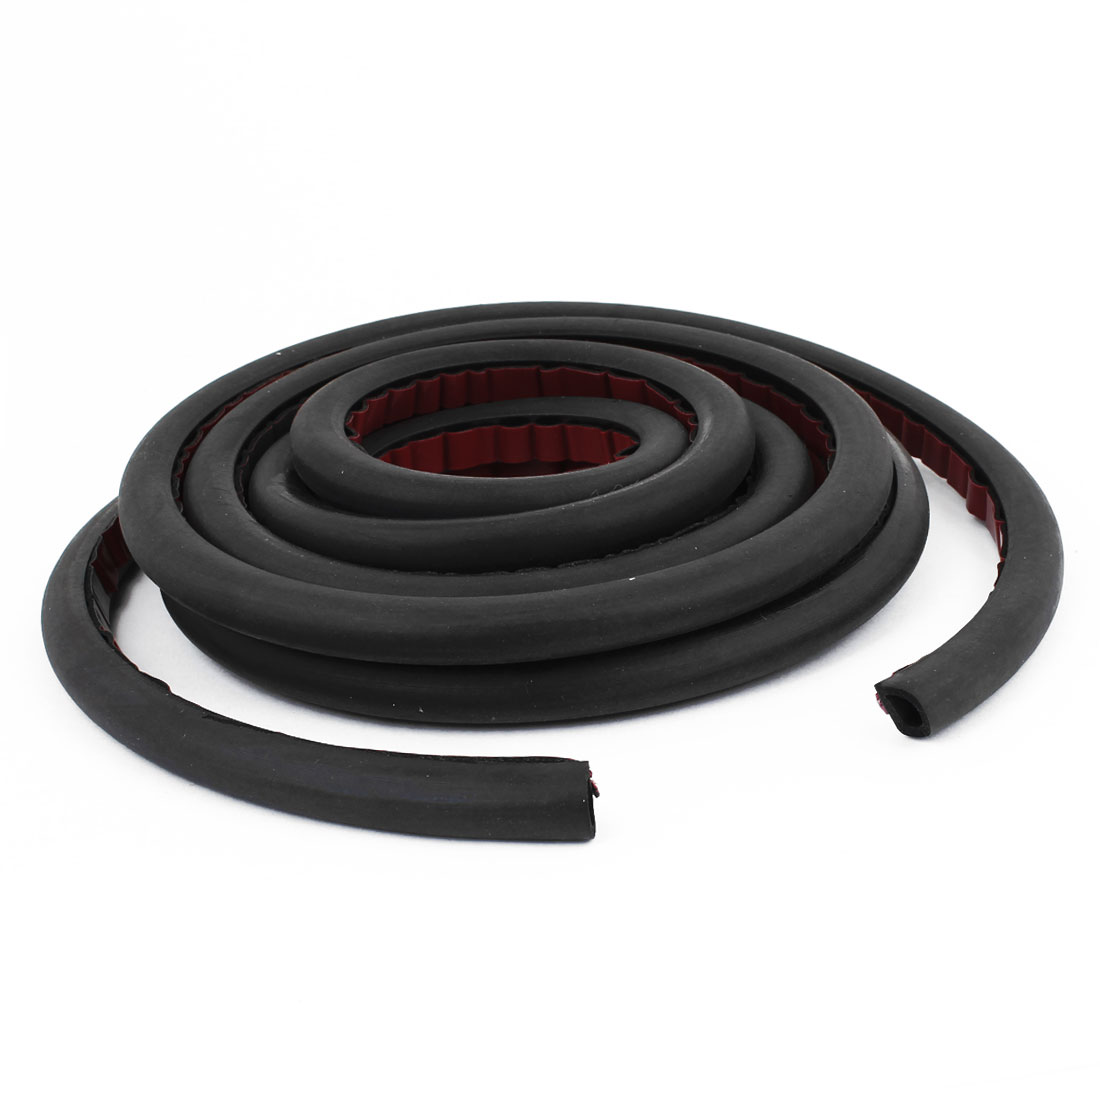 Car Air Sealed Rubber Hollow Sealing Strip Door Weatherstrip 9.8ft x 13mm x 10mm